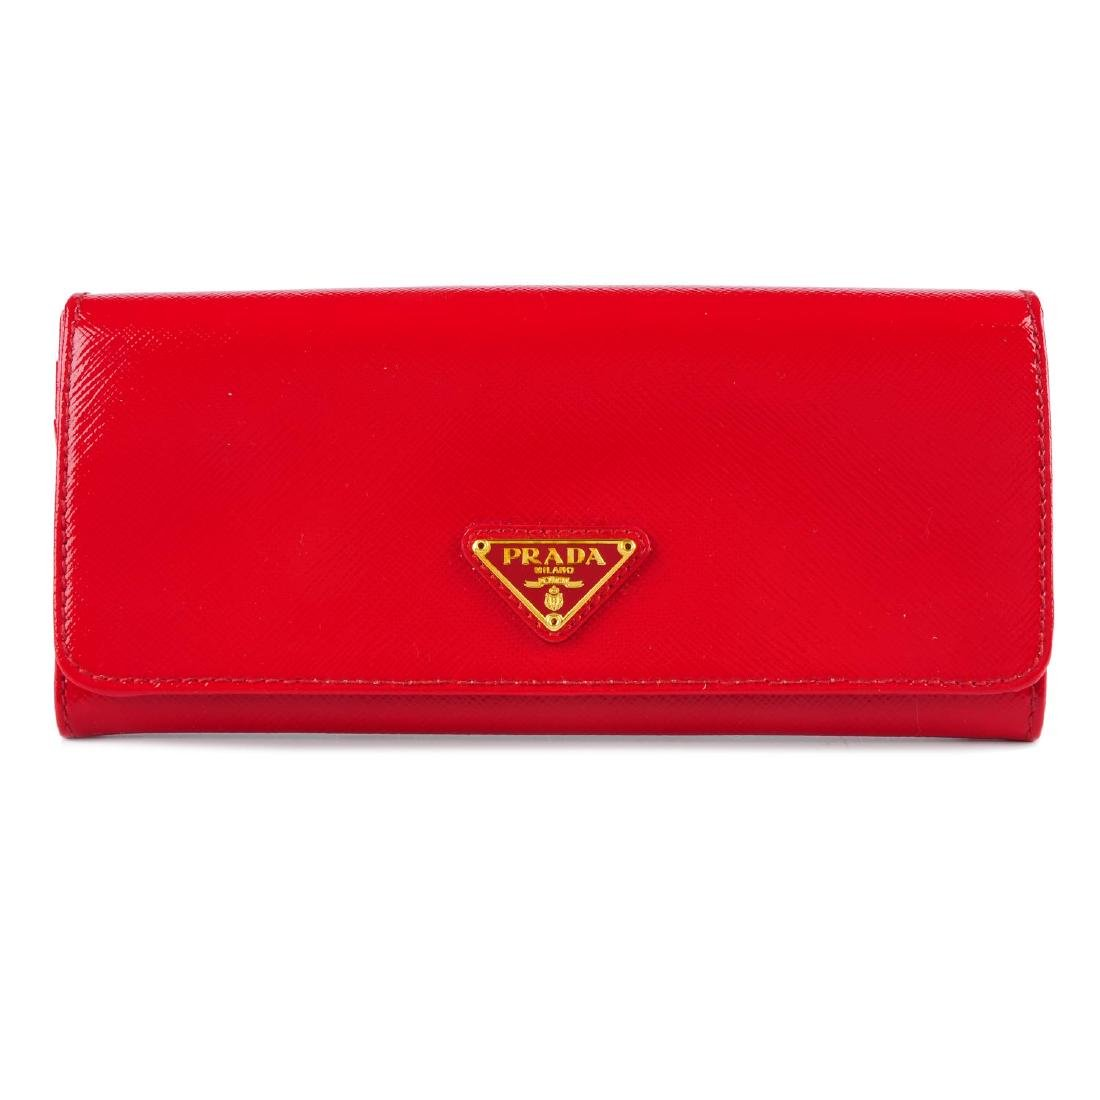 PRADA - a red Saffiano continental wallet. Designed